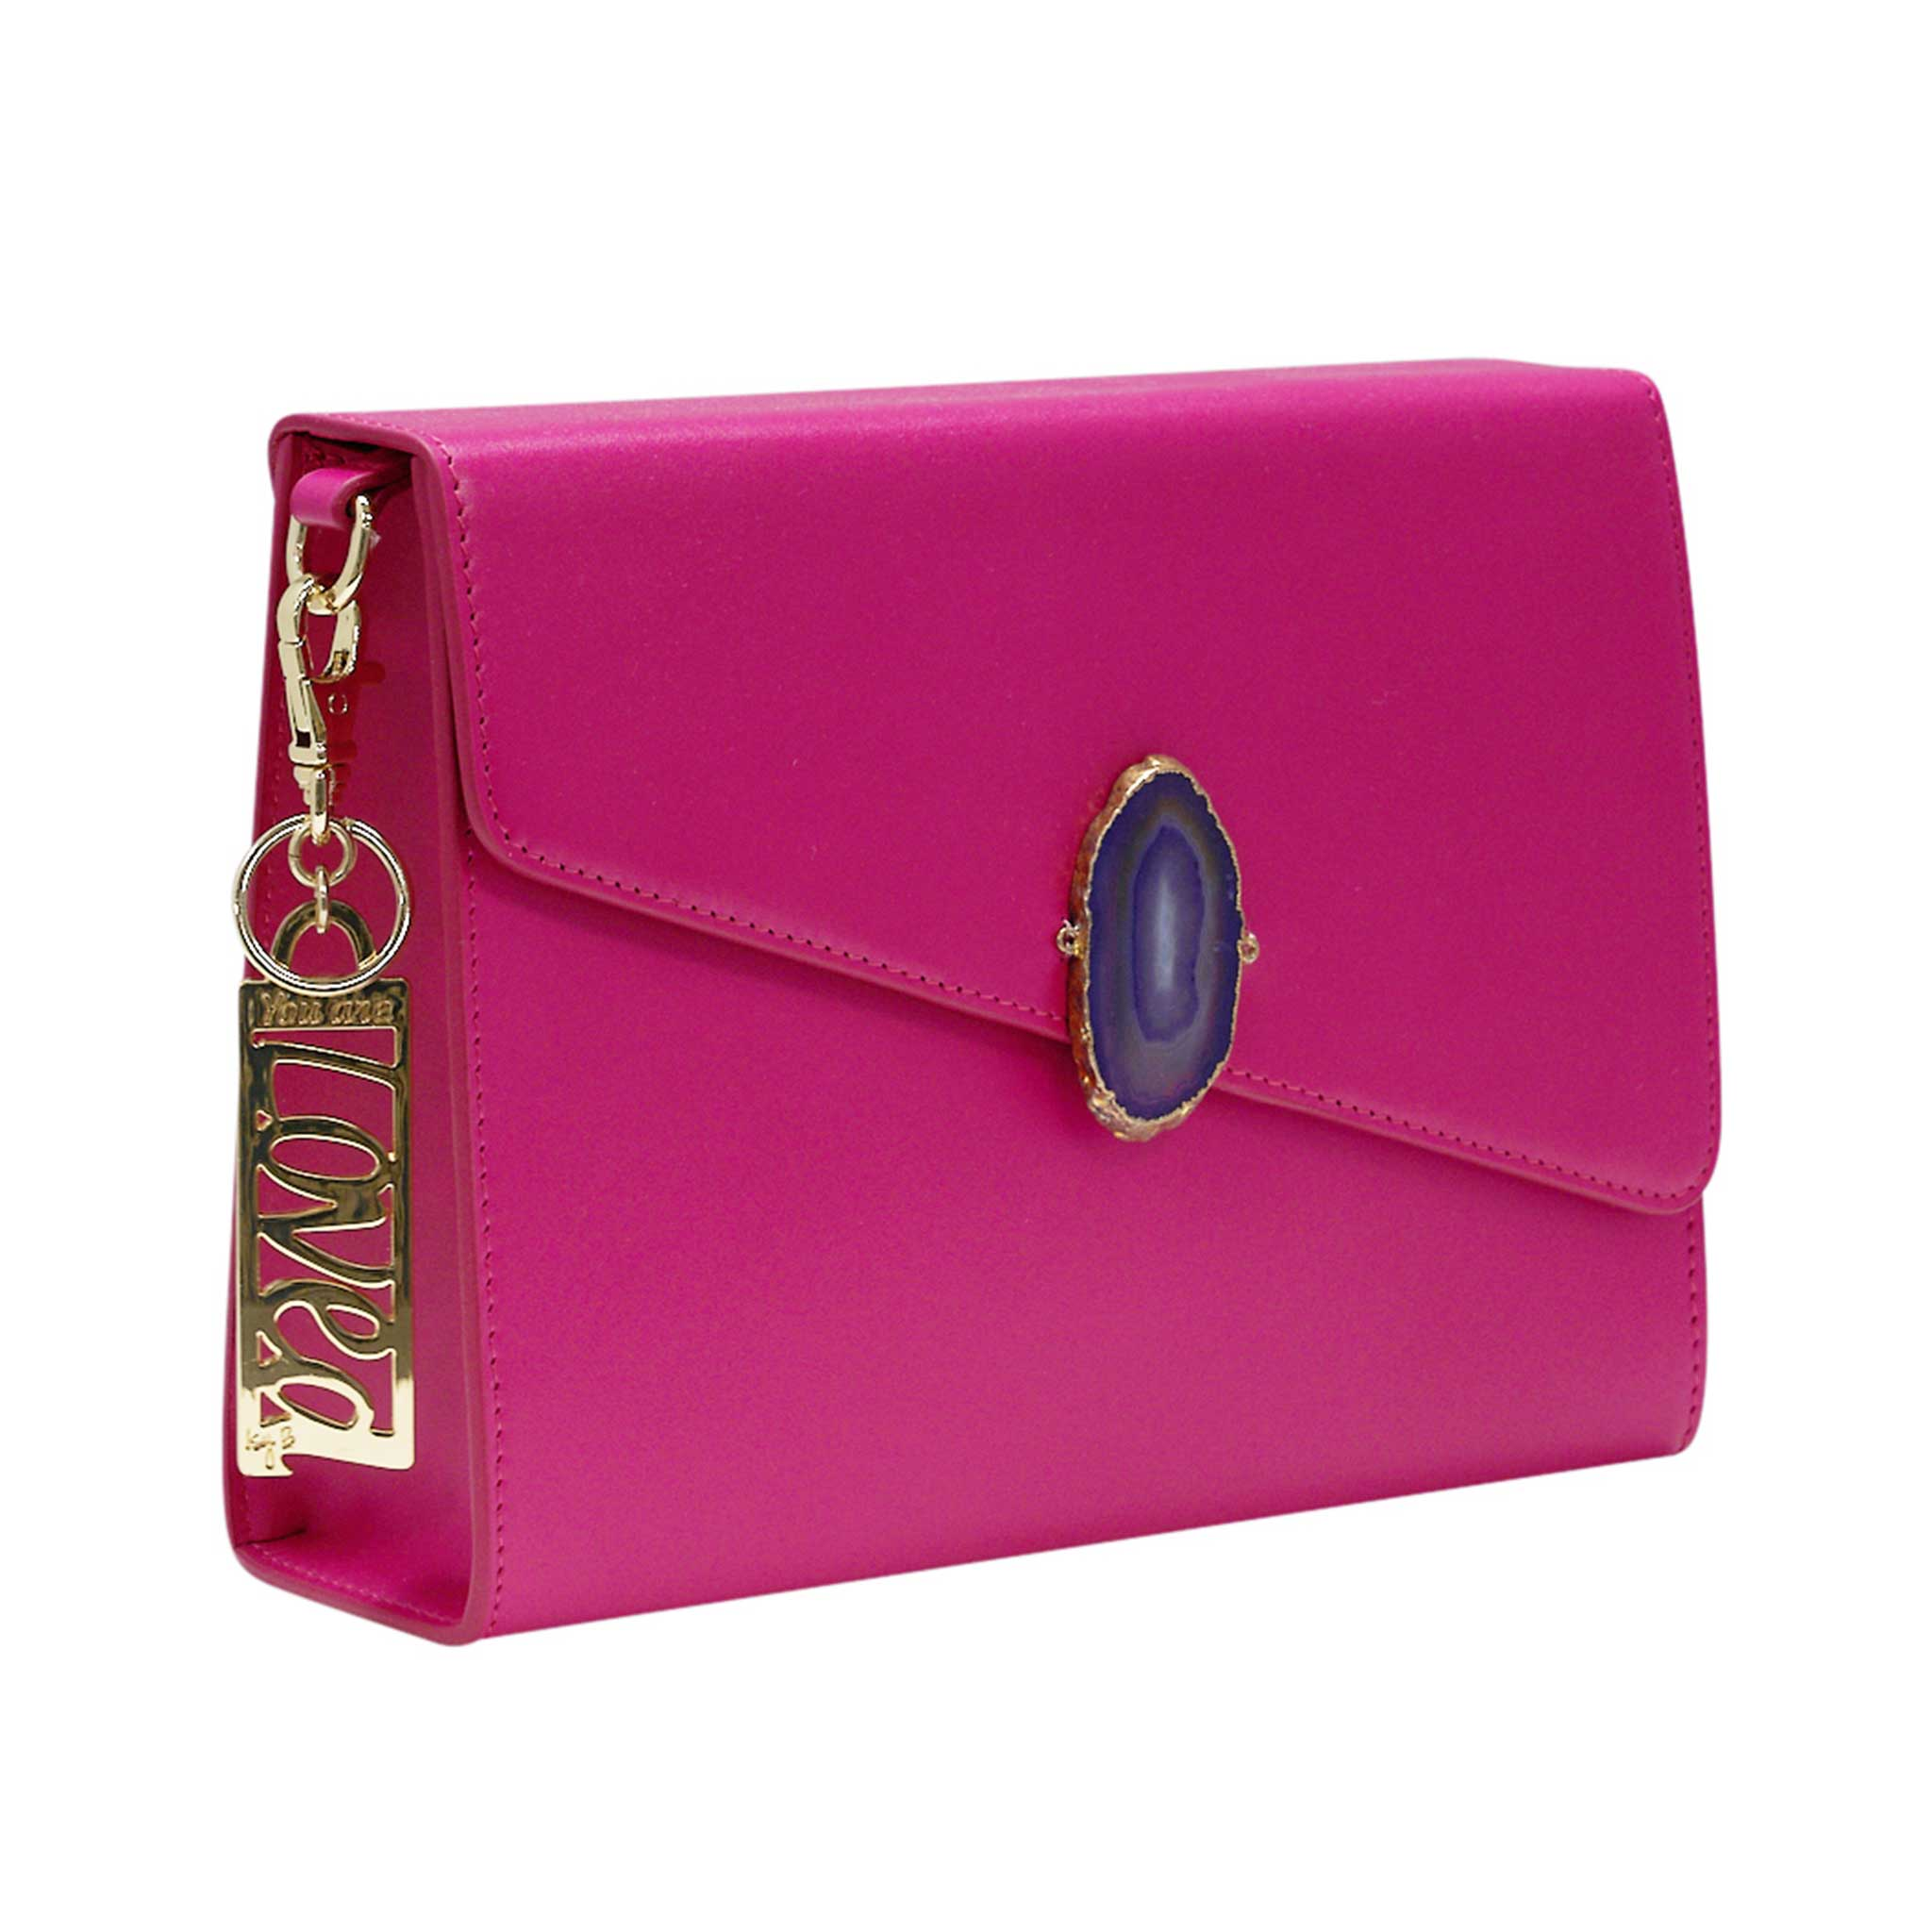 LOVED BAG - PINK RUBY LEATHER WITH PURPLE AGATE - 1.01.006.001